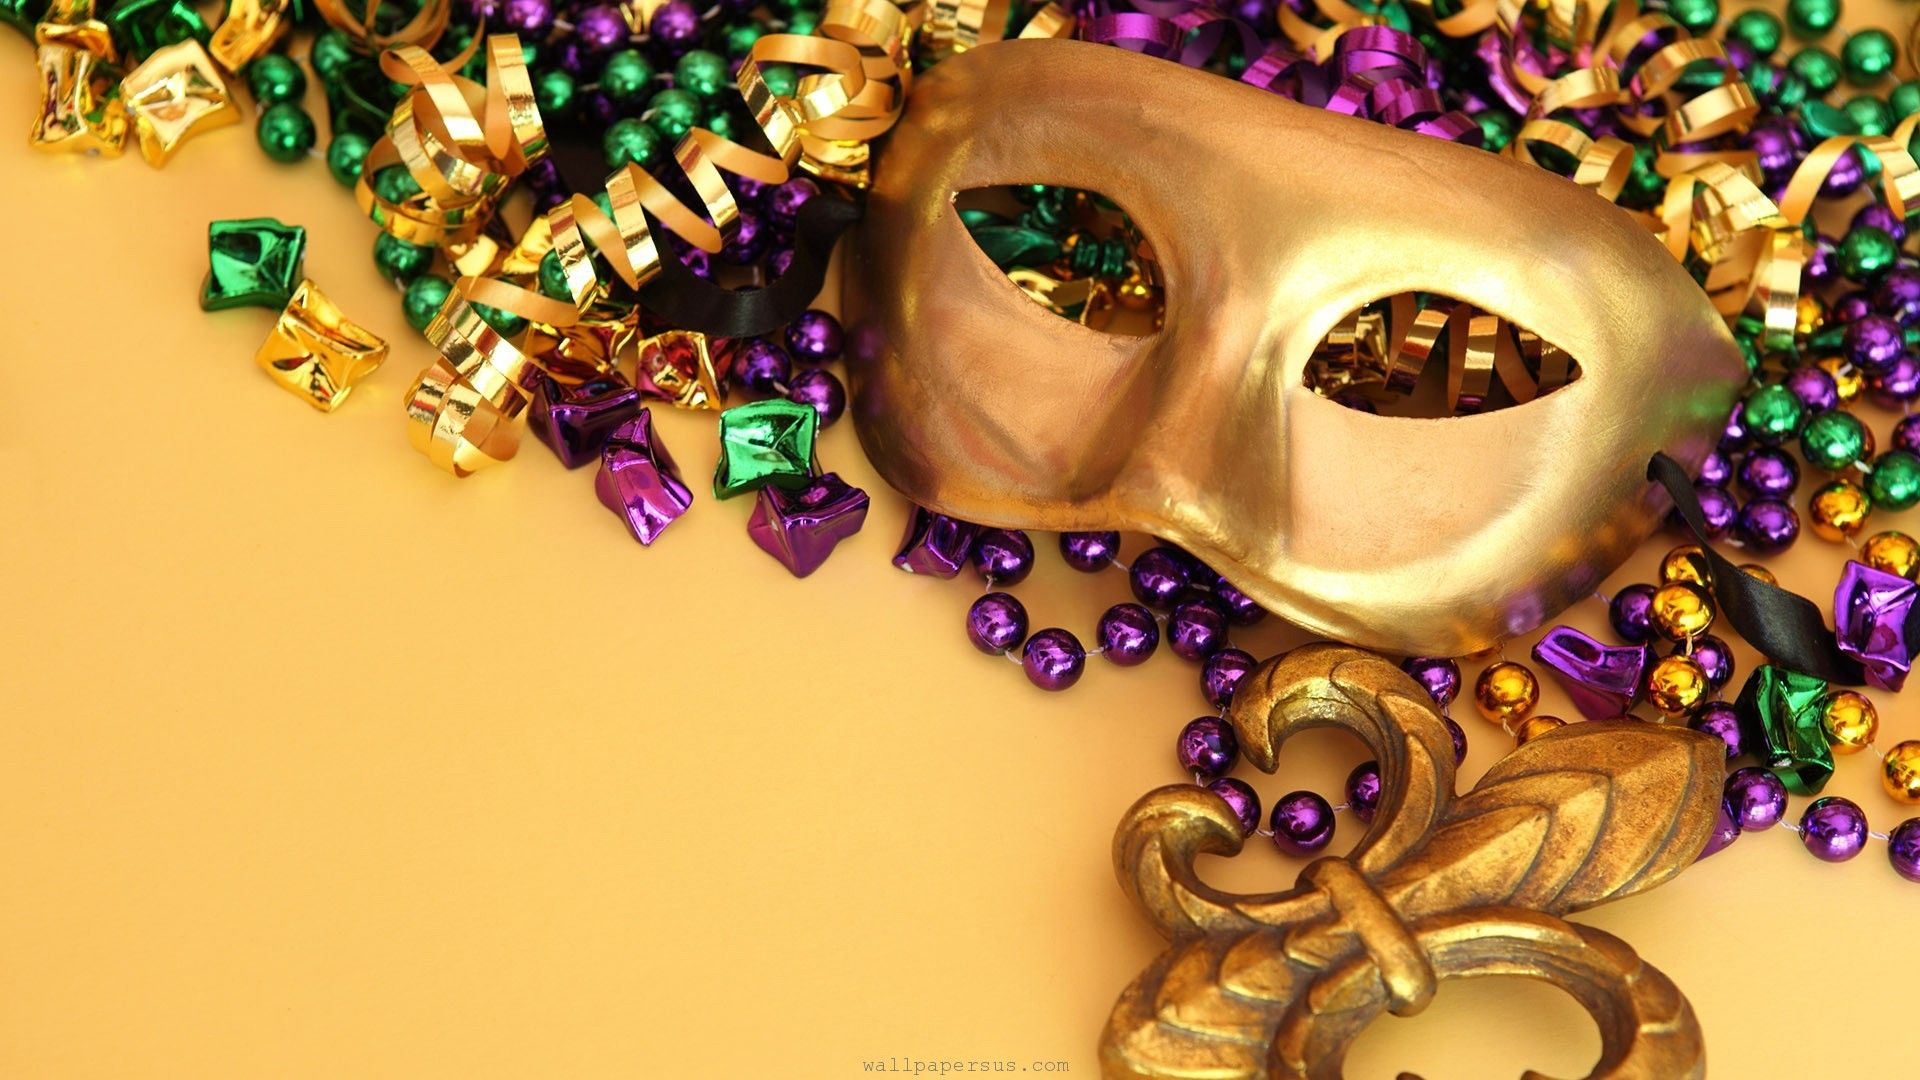 masquerade mask disguise picture and wallpaper I Love my Mask